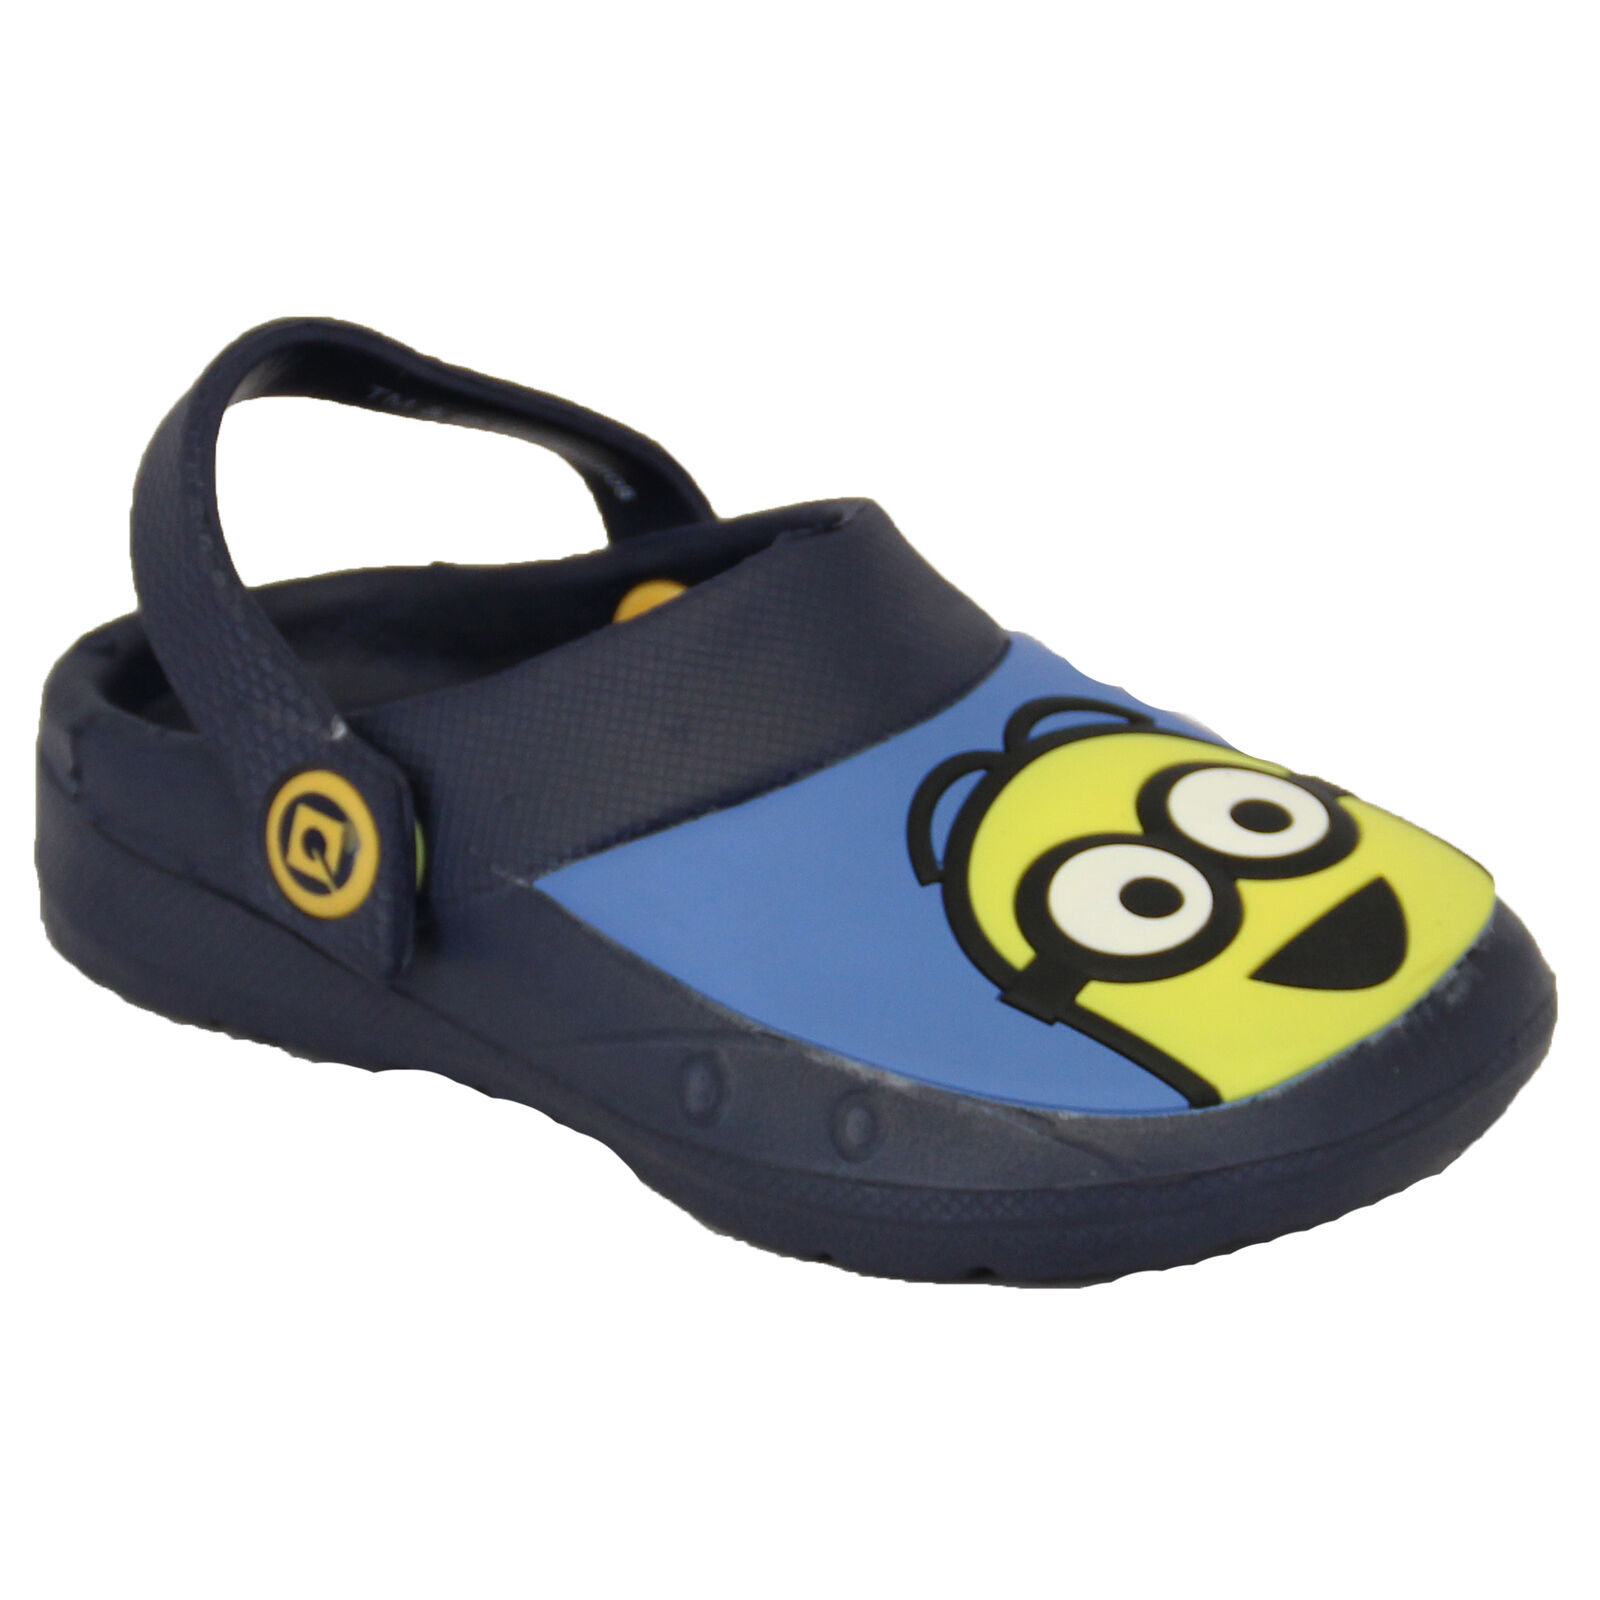 Boys Clogs Sandals Kids Pumps Despicable Me Minions Beach Character Pumps Kids Summer New 8da78c